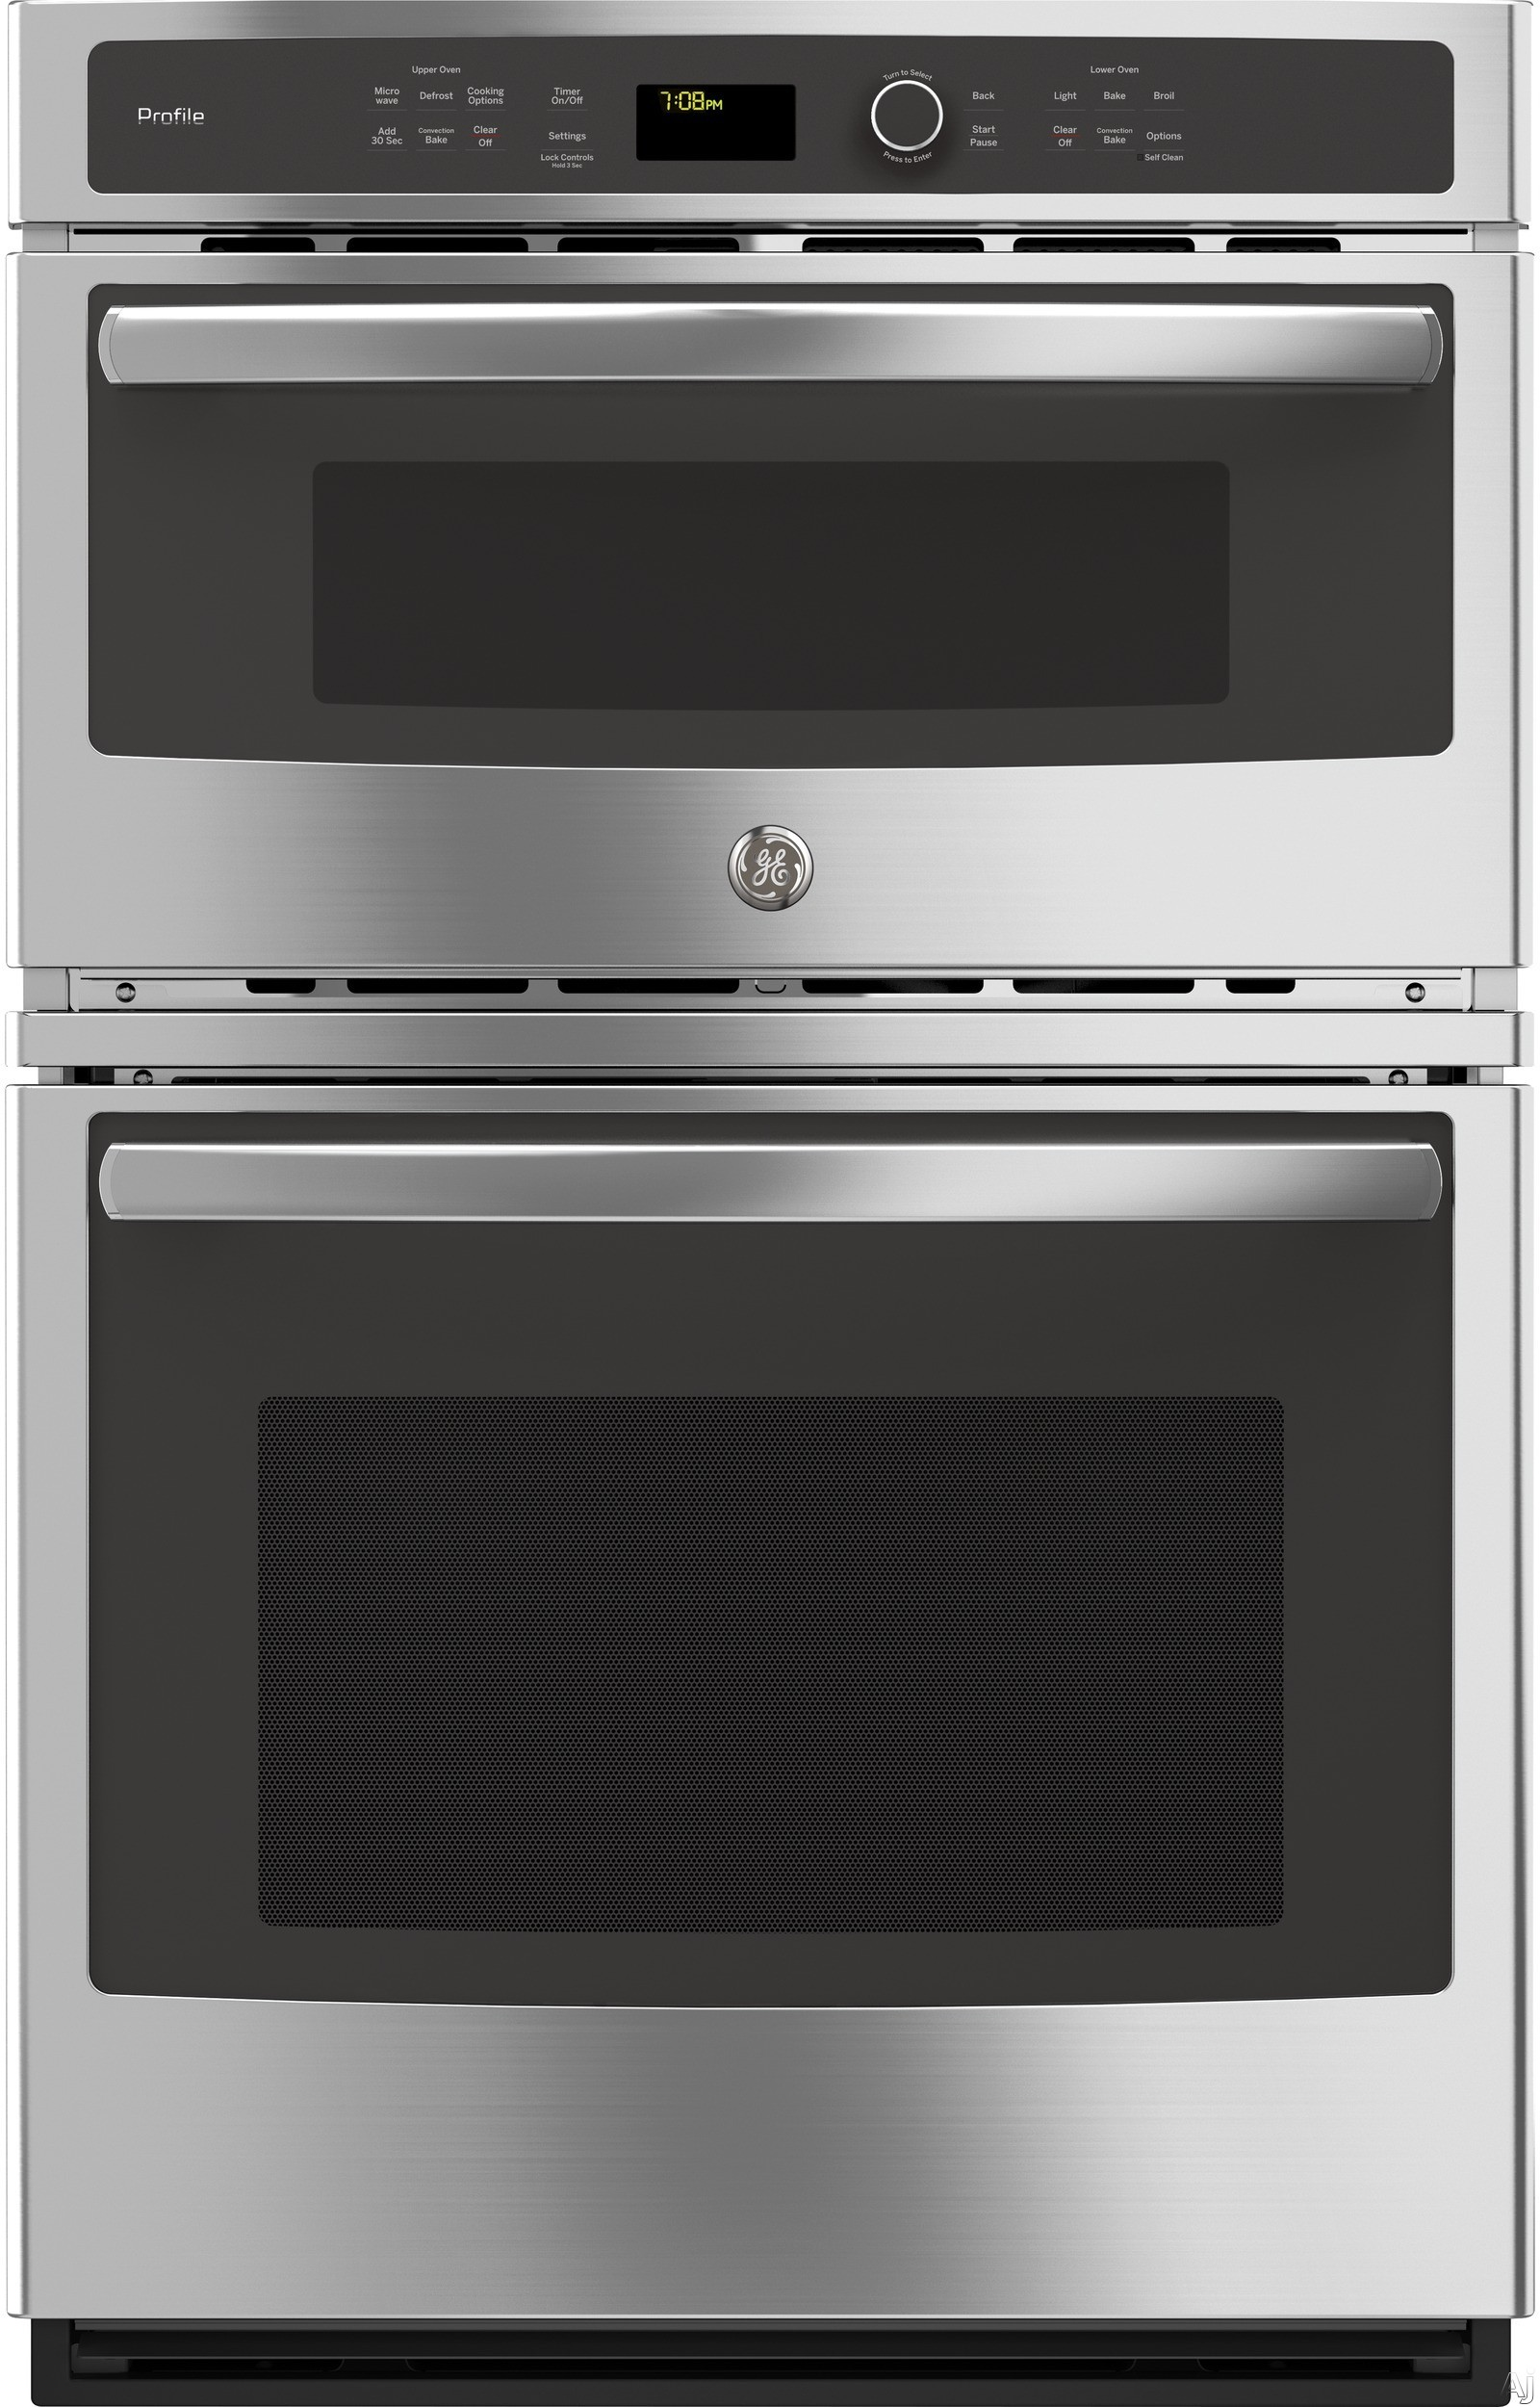 GE Profile PK7800SKSS 27 Inch Combination Electric Wall Oven with 6 Total cu. ft. Capacity, True European Convection Oven, Convection Microwave, Proof, Defrost, Warm, Delay Start, Ten-Pass Bake Elemen